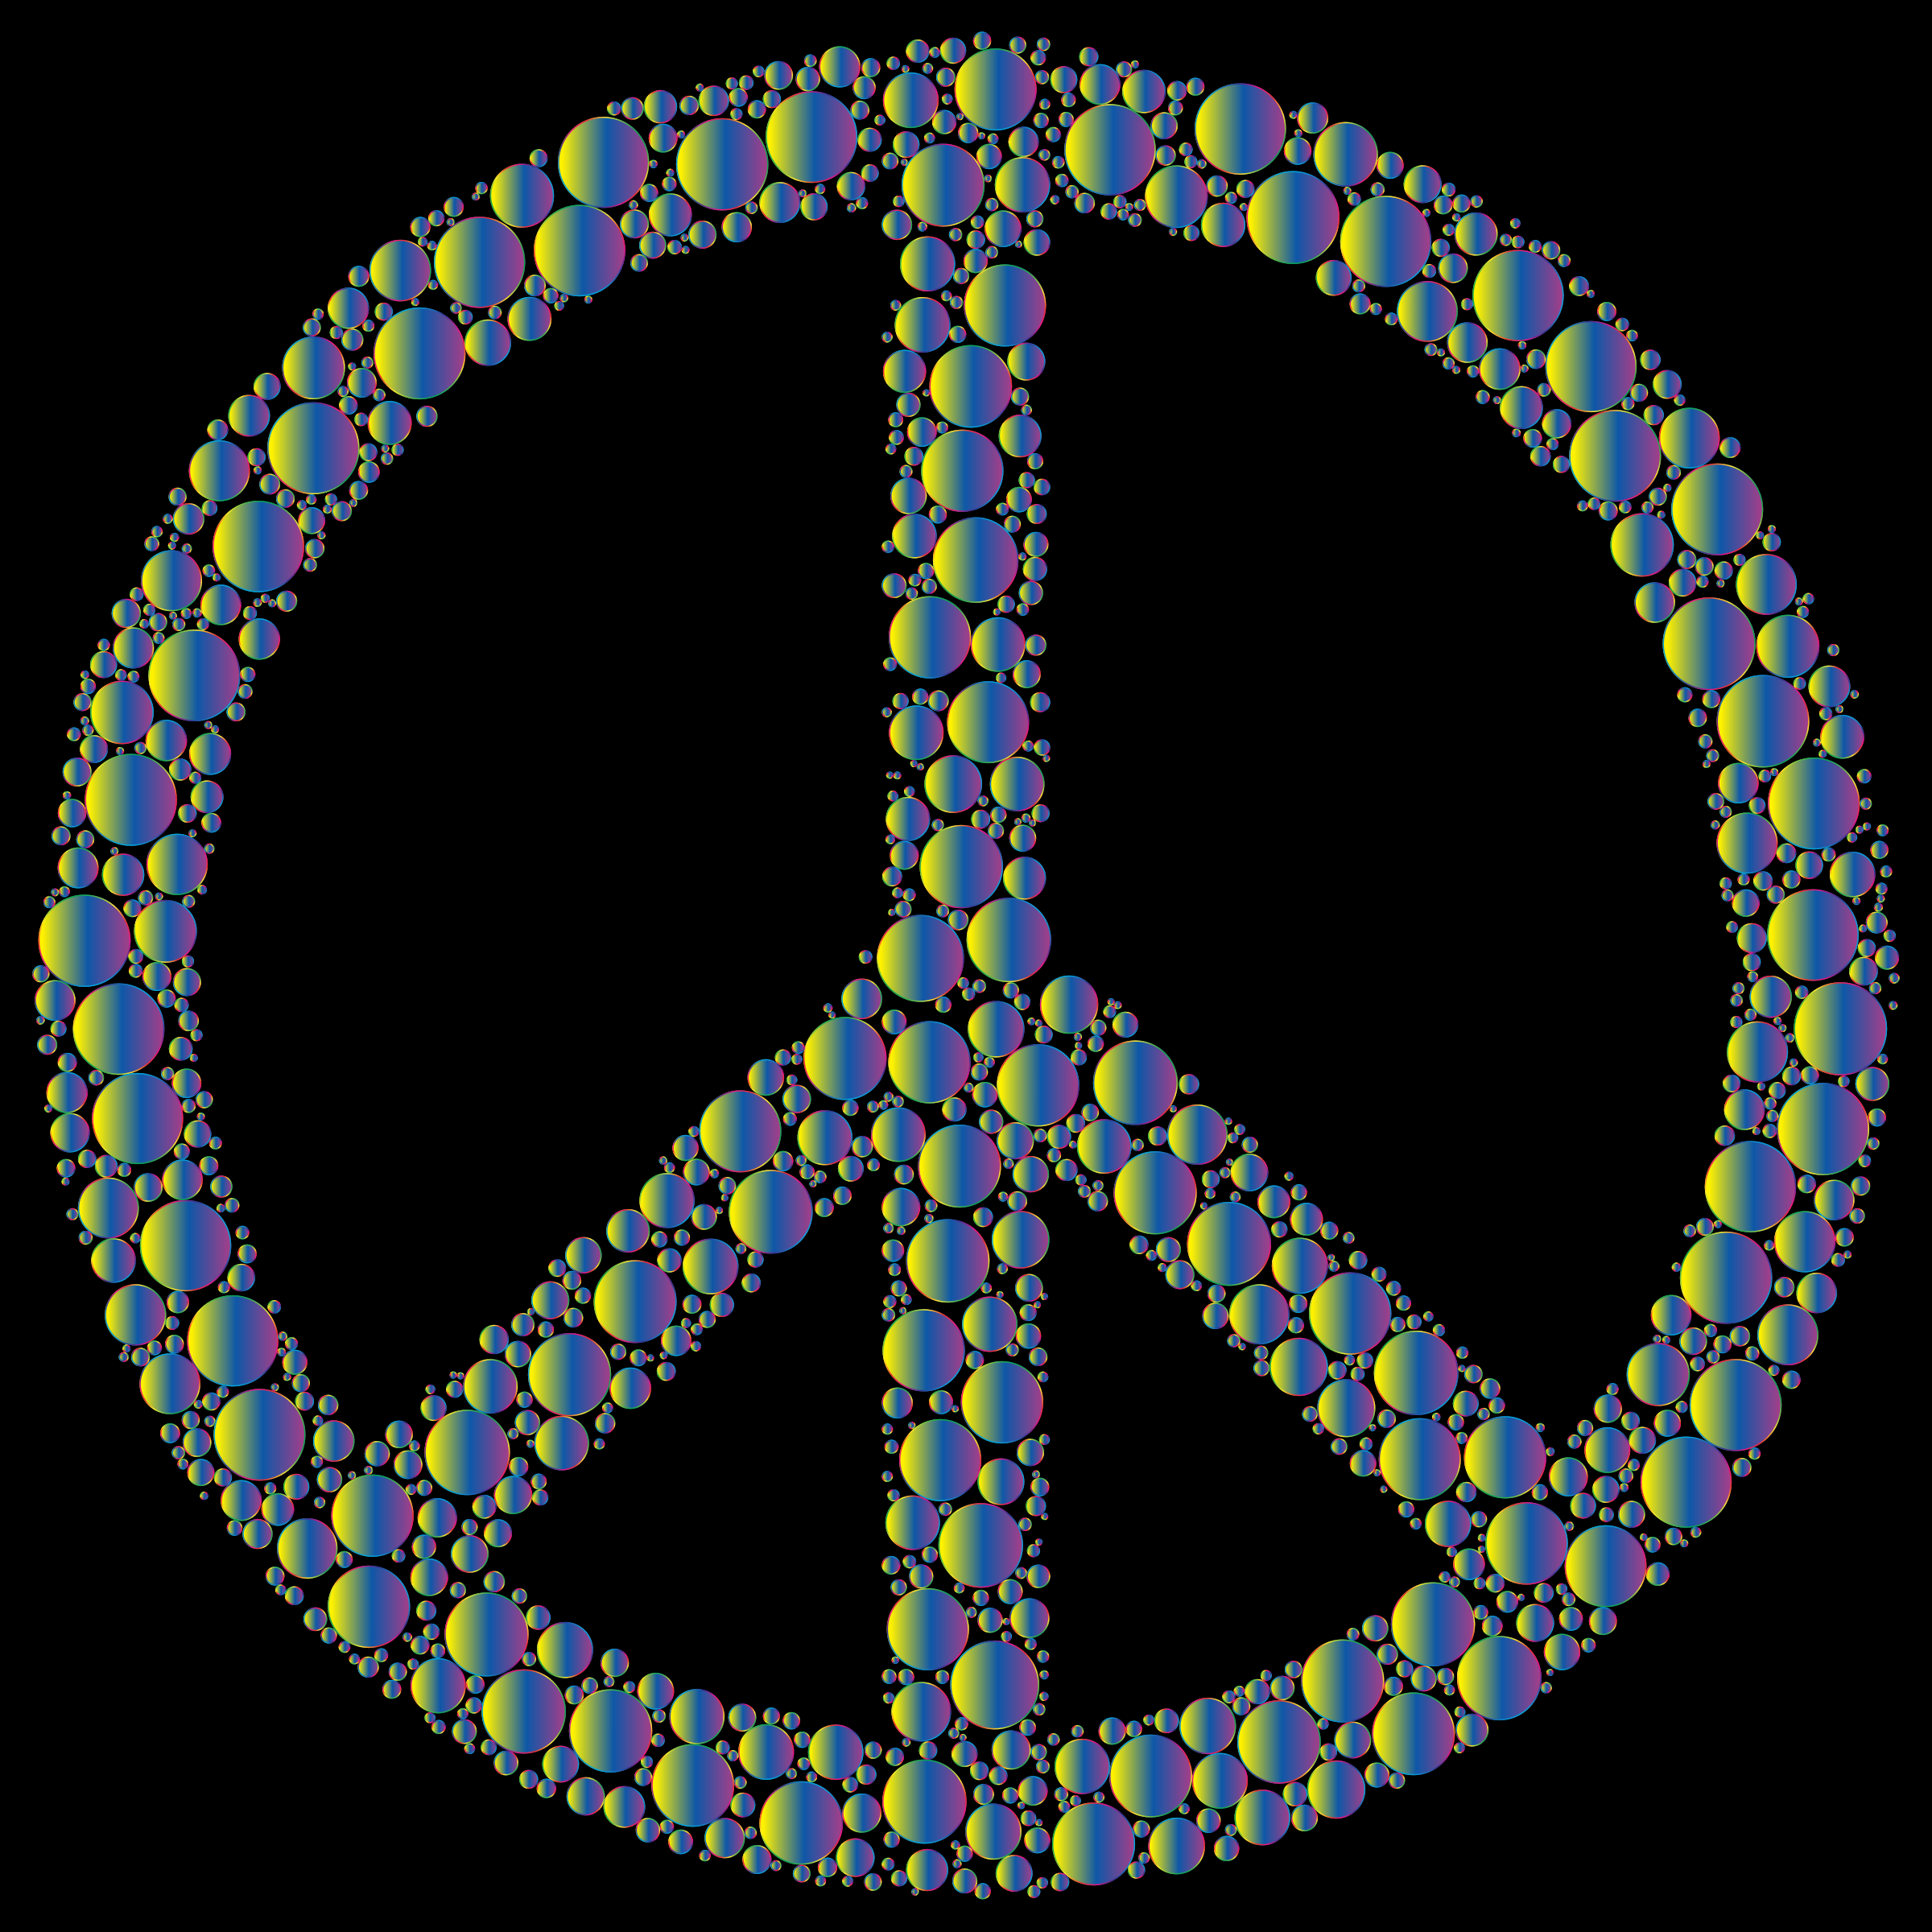 Colorful Circles Peace Sign 23 by GDJ